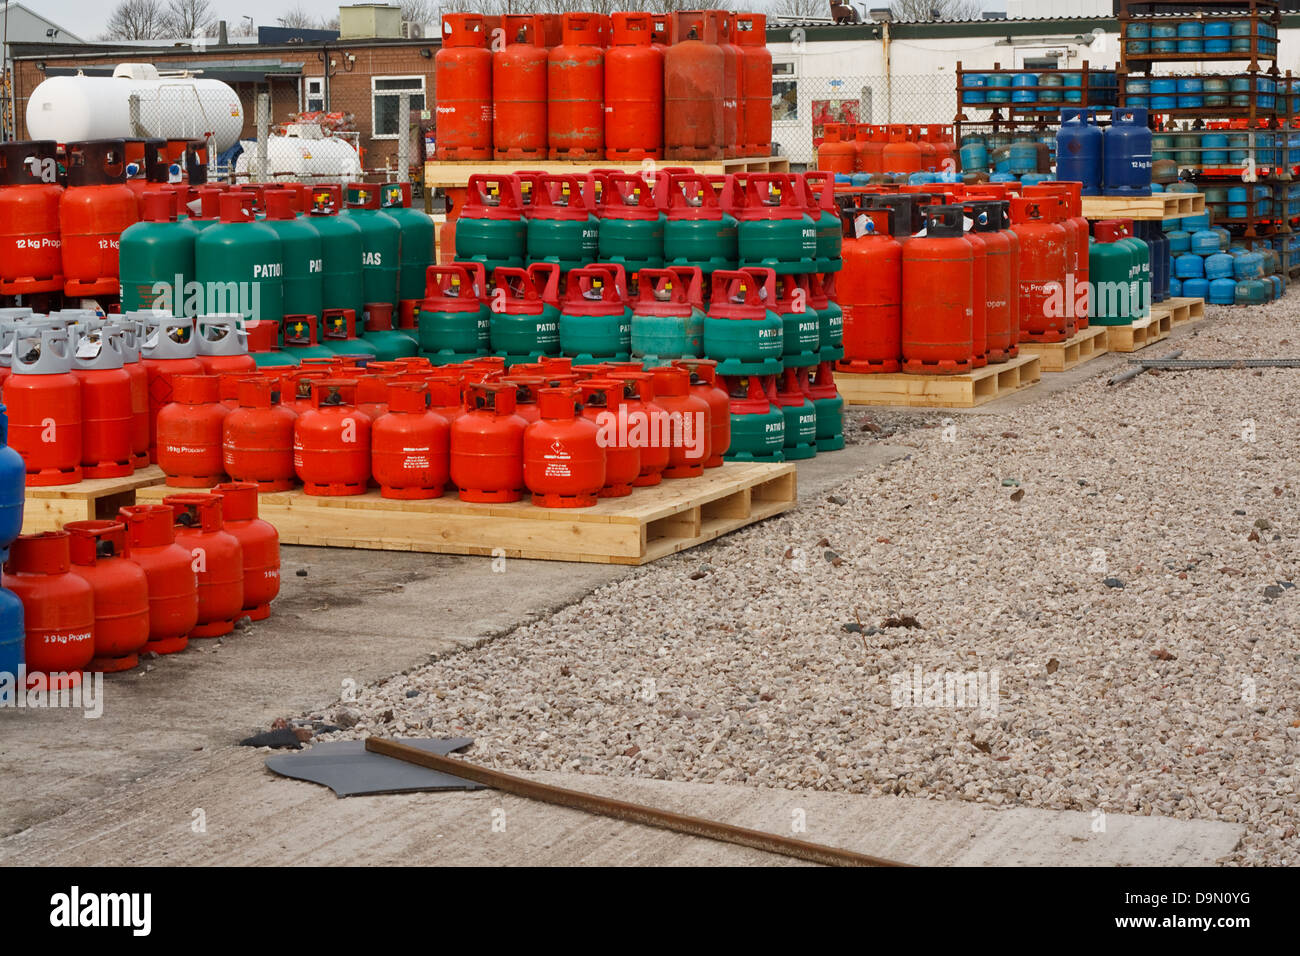 Domestic propane gas bottles in storage at a distribution centre - Stock Image